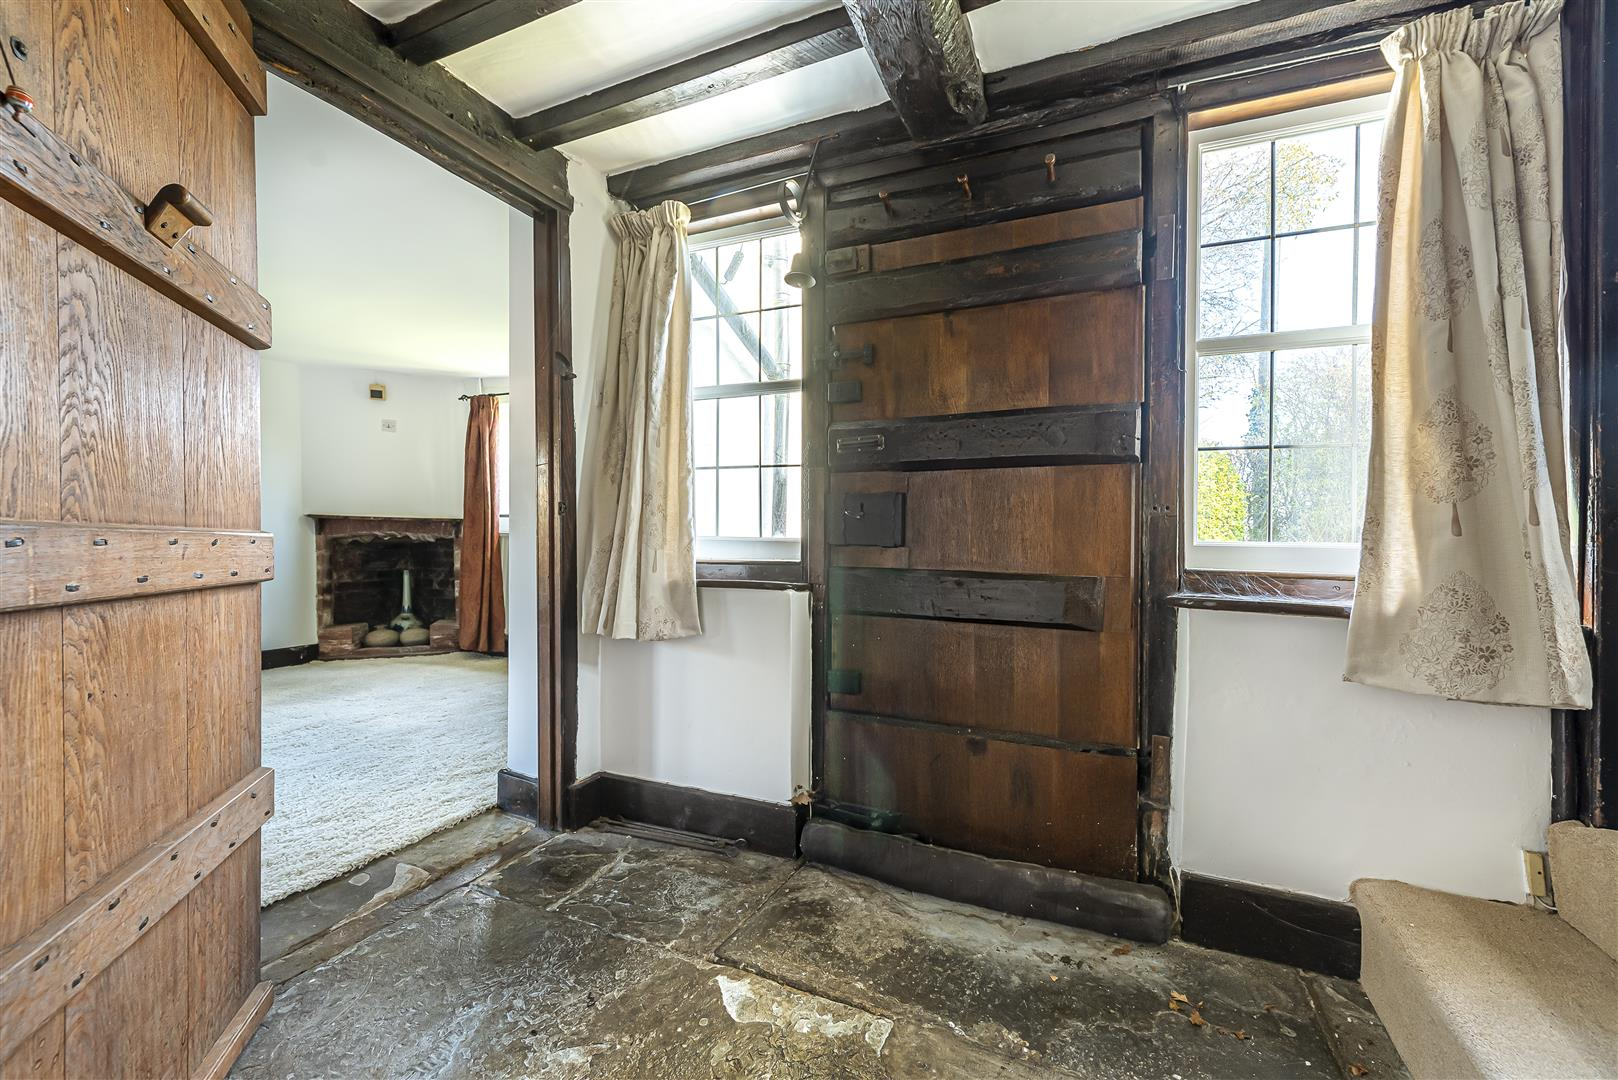 Images for PERIOD COTTAGE - REDUCED PRICE FOR AUCTION EAID:hollismoapi BID:11